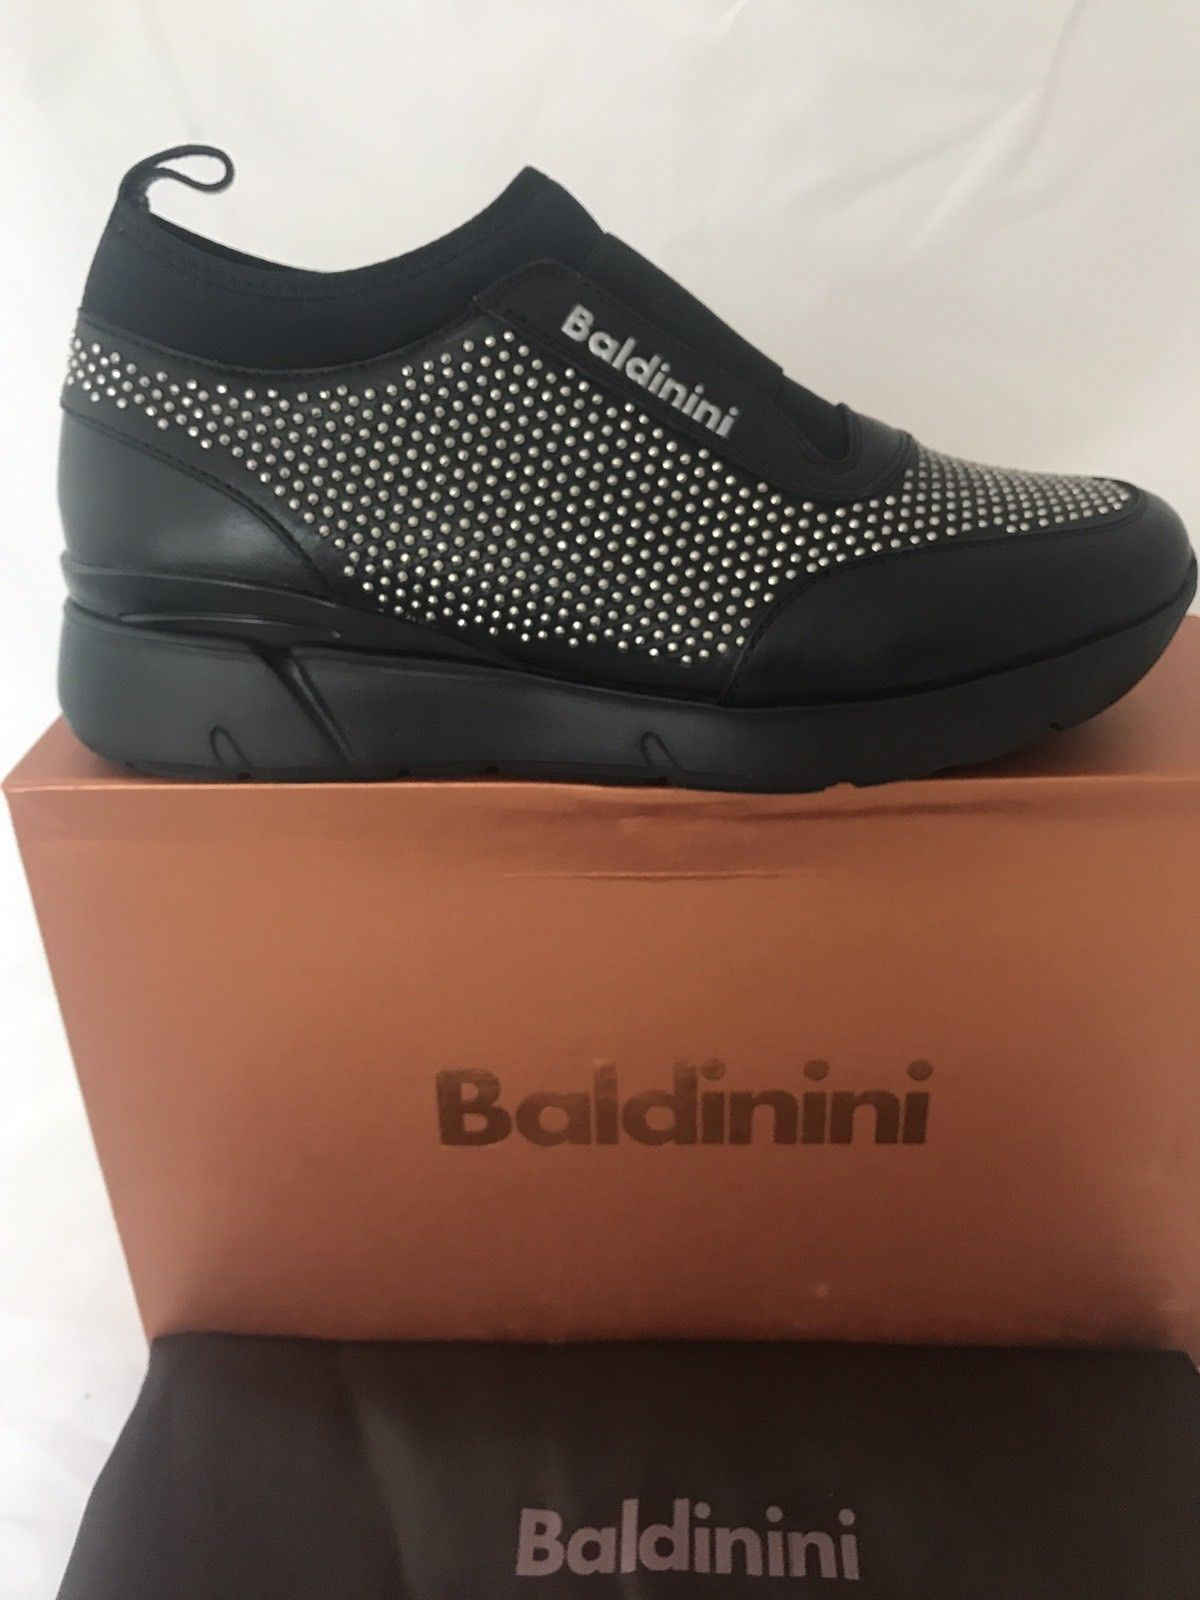 NIB $580 Baldinini Women's Studded Sneakers Black 38 Eu Made In Italy - BAYSUPERSTORE